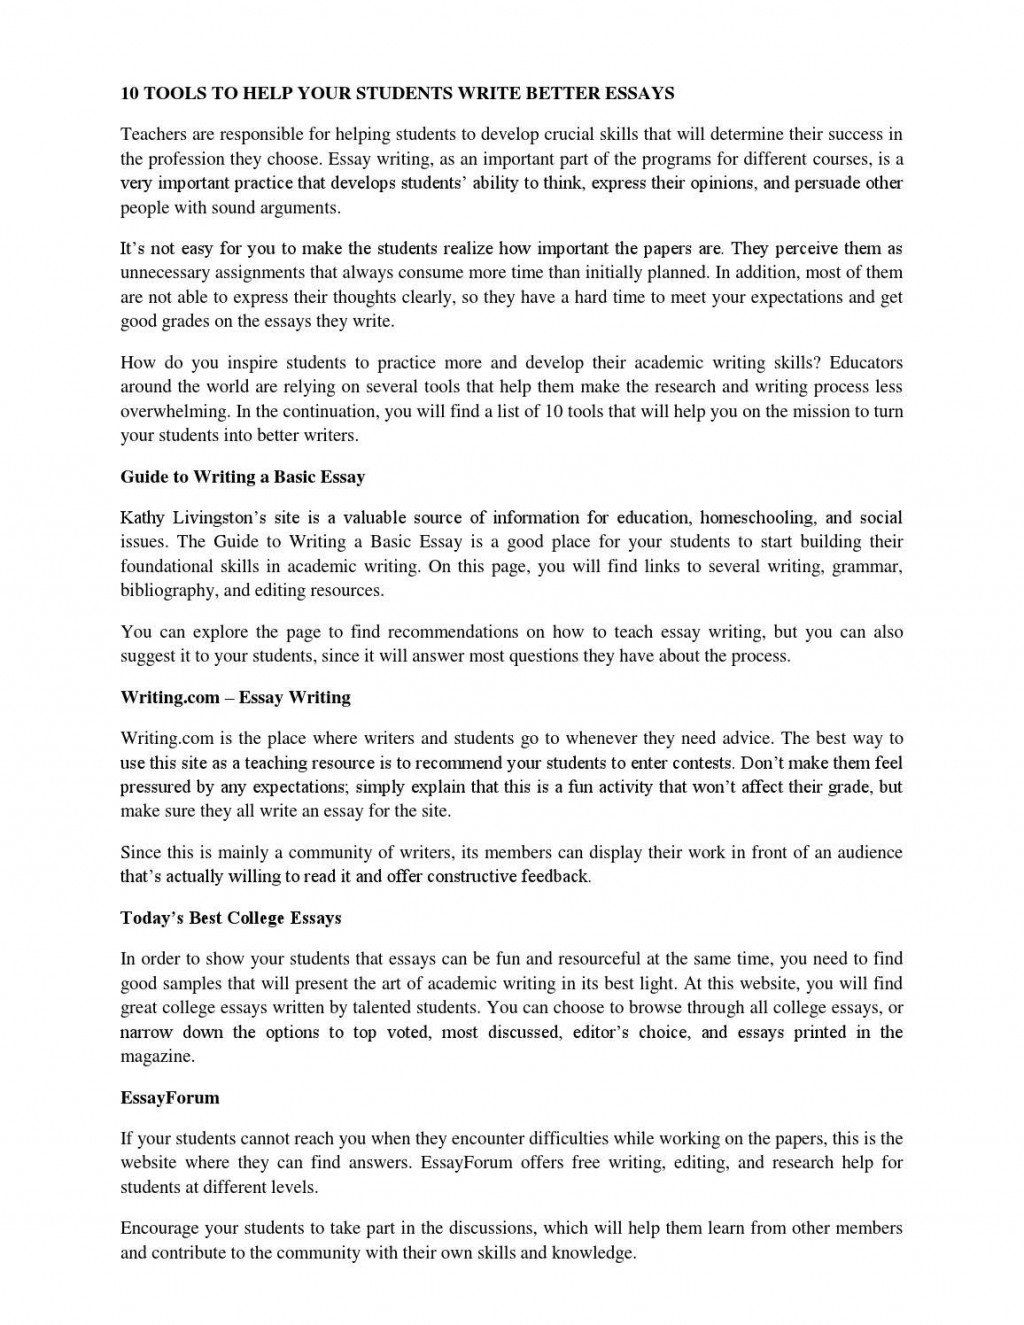 017 Research Paper Online Papers Free Essay Writing Websites Reviews For Students Editing Page Example Fearsome Journals Download Read Large